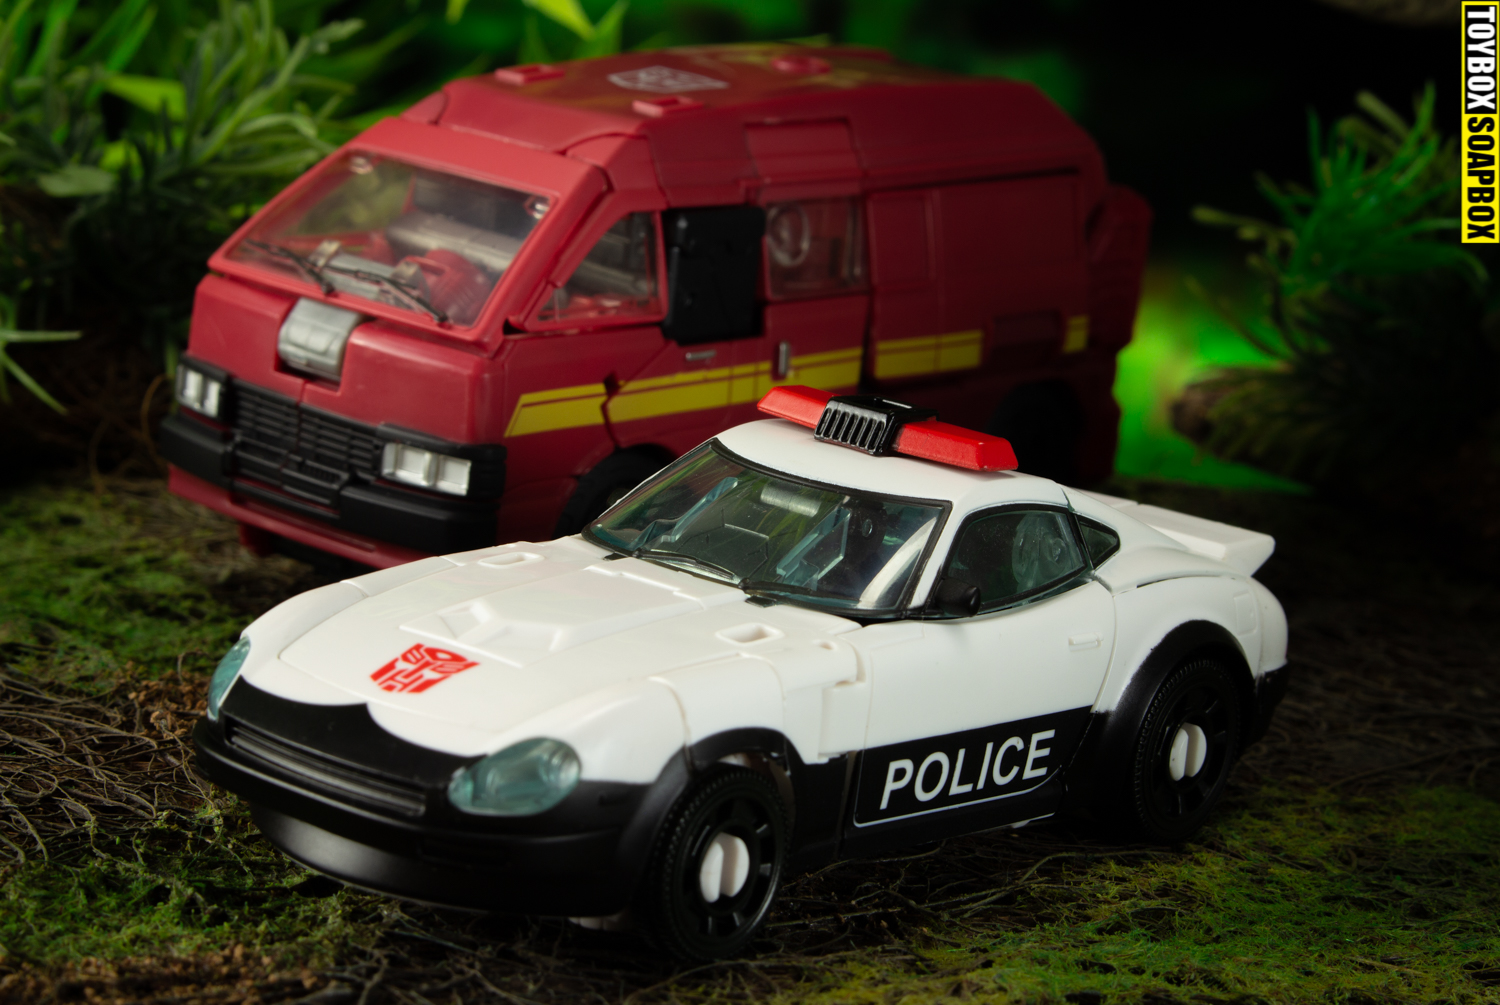 autobot alliance prowl and ironhide vehicle modes